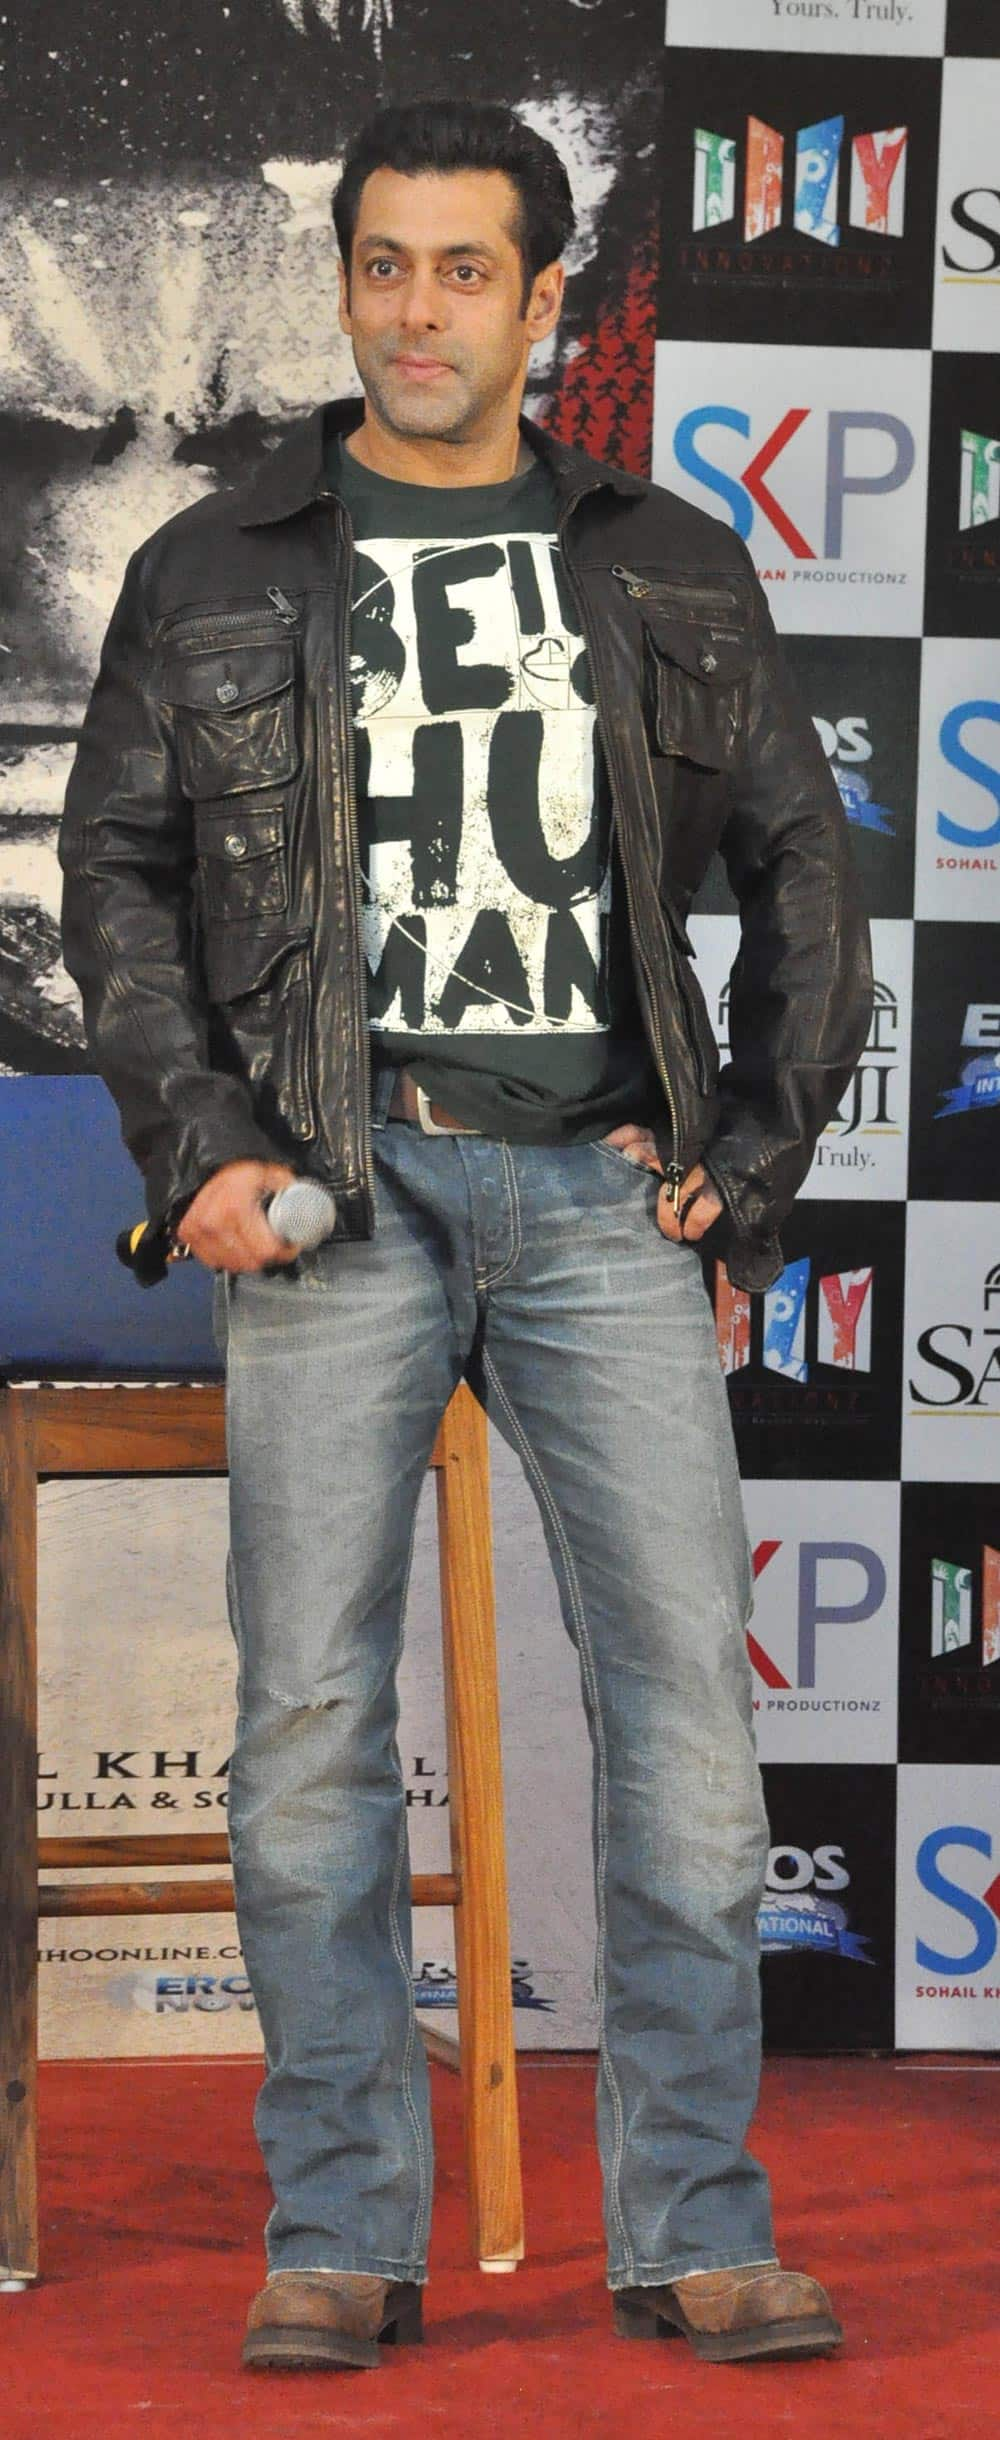 Bollywood actor Salman Khan at the promotion of his film 'JAI HO', in Indore.- Ravindra Sethiya.DNA